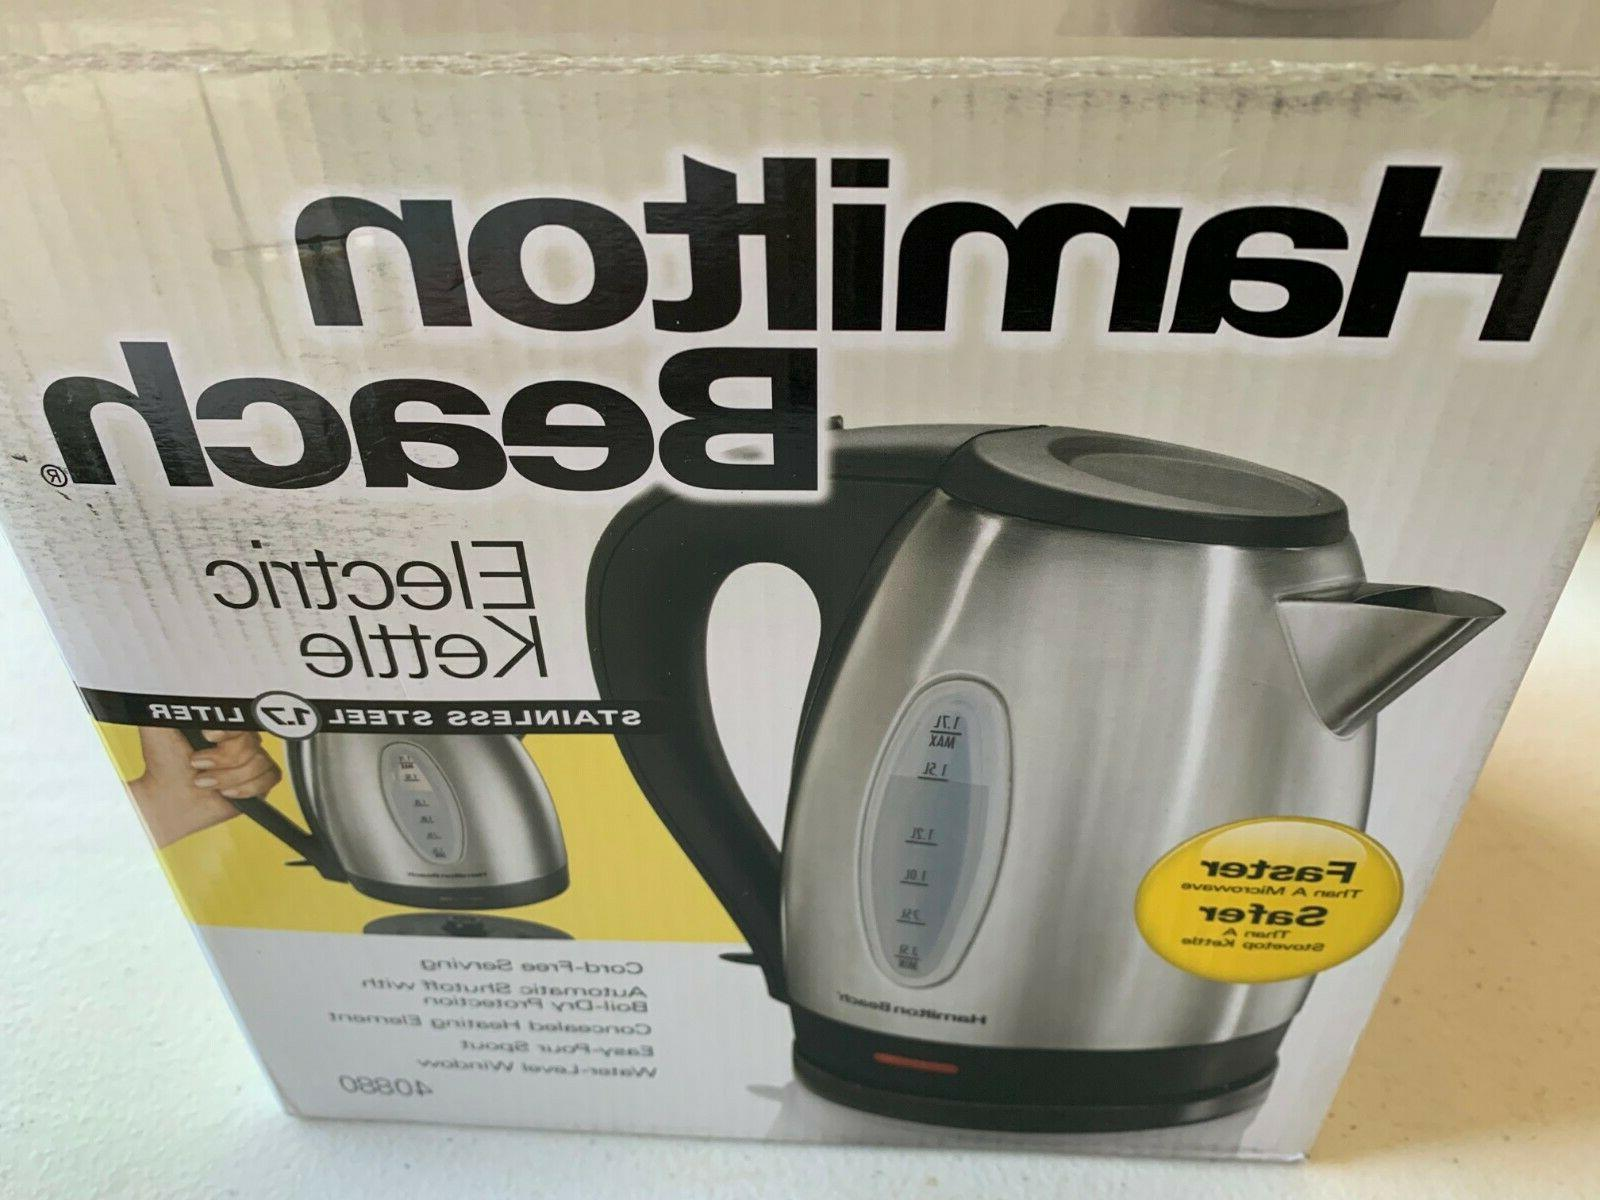 40880 stainless steel electric kettle 1 7